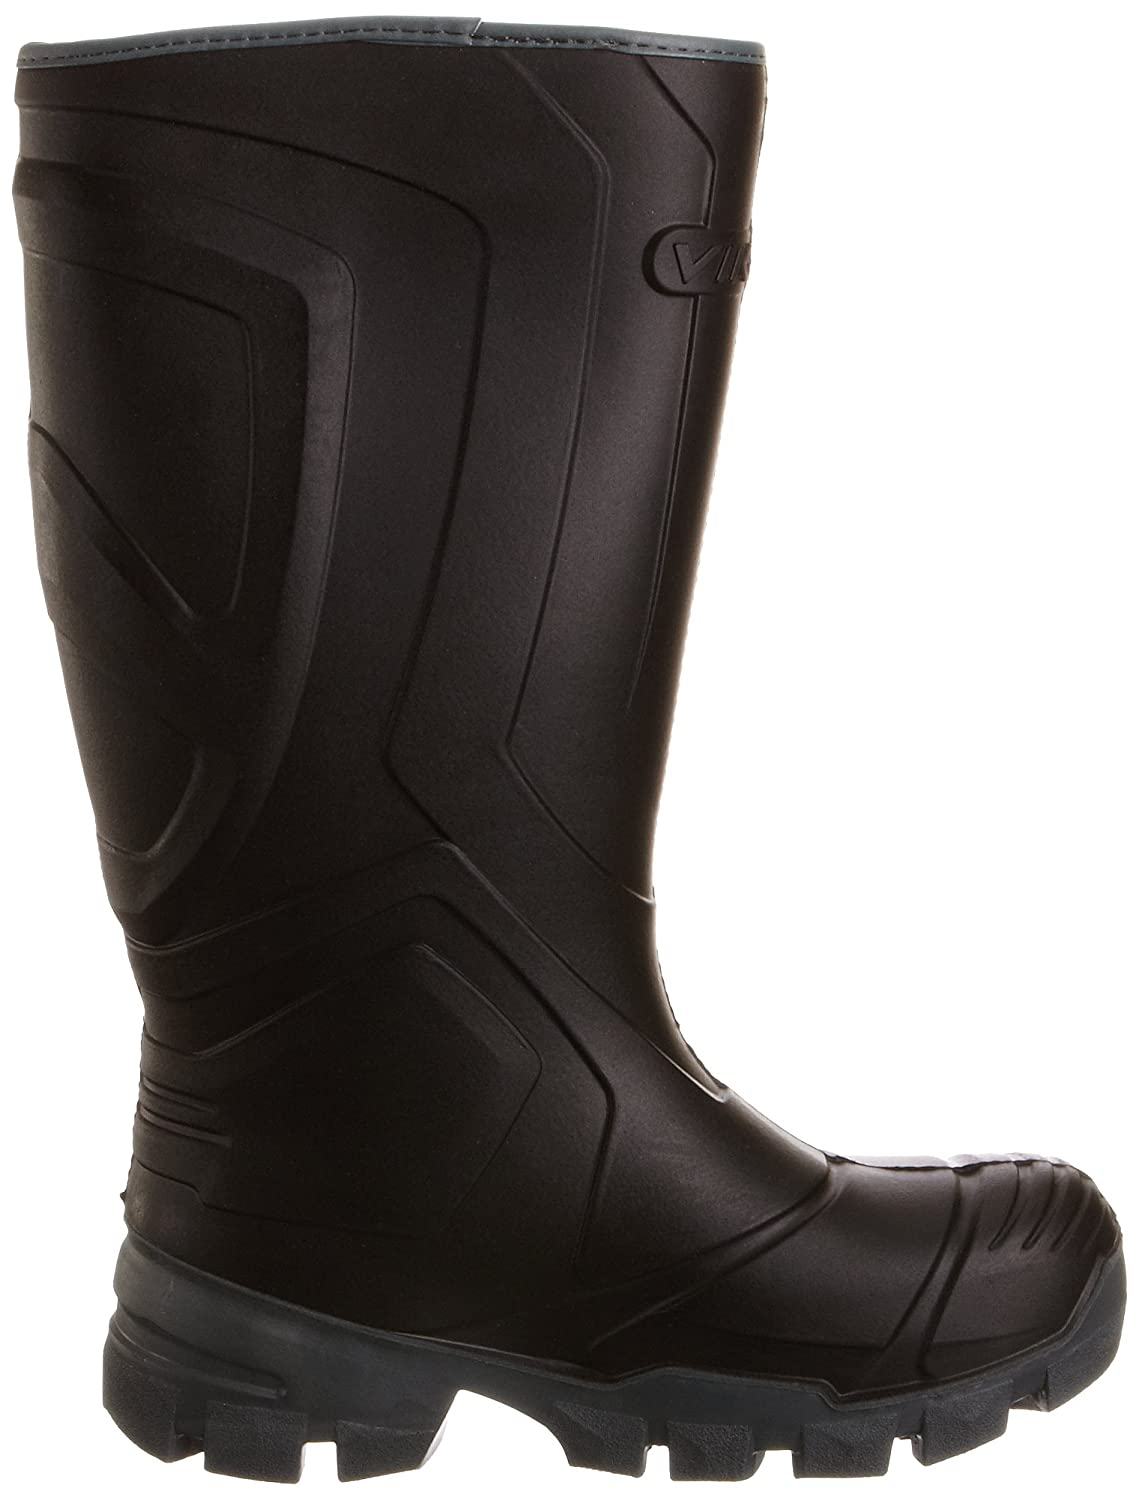 Unisex Adults Ice Fighter Hunting Boots Viking ic5dYB5